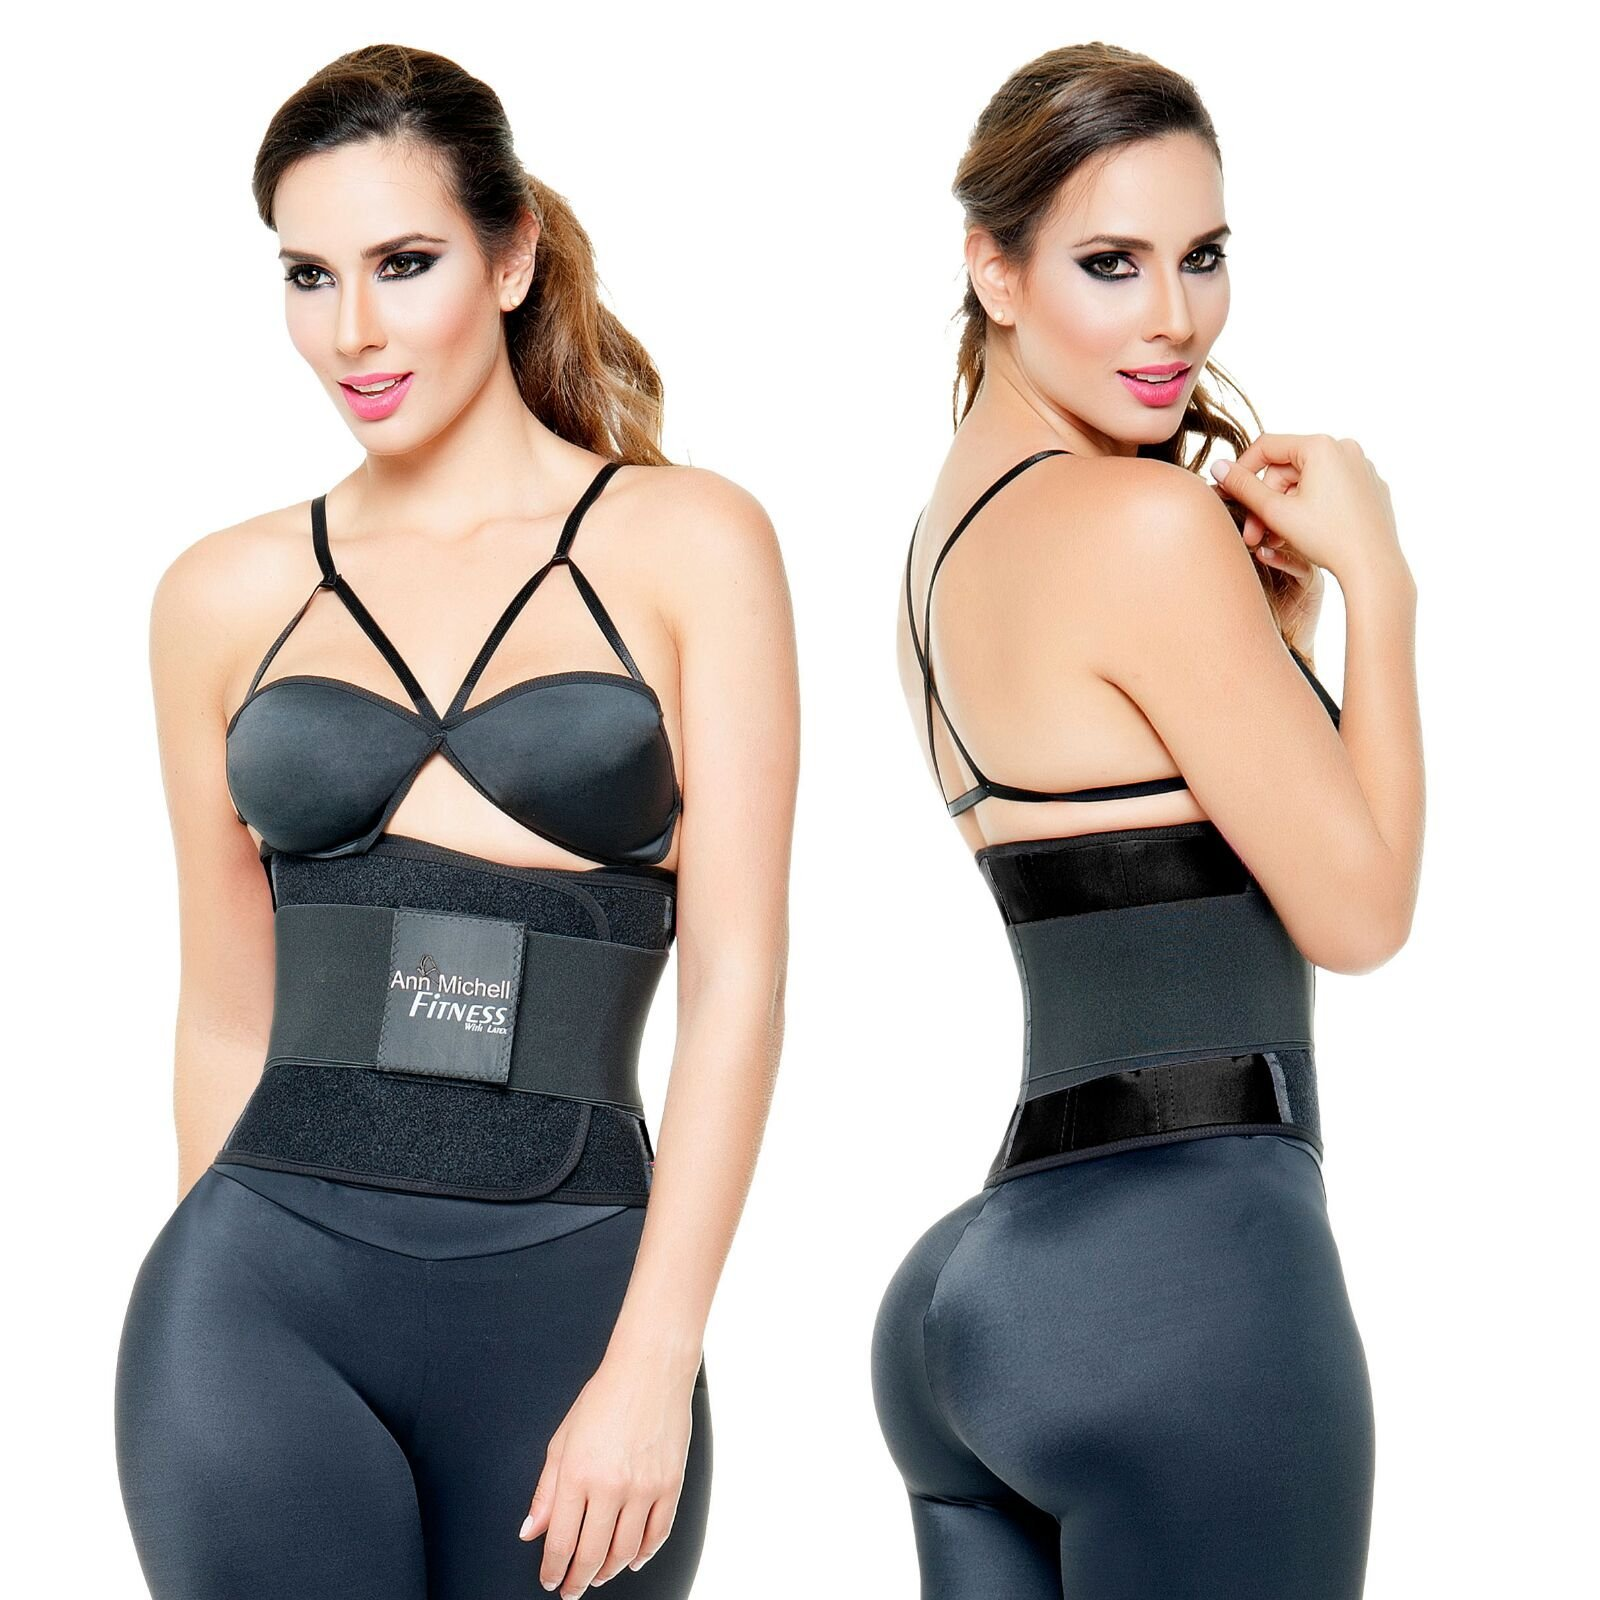 72a1cc8cc7 ANN MICHELL 4025 FITNESS THERMO LATEX XTREME POWER BELT BODY SHAPER GYM  TRAINER -  38.71